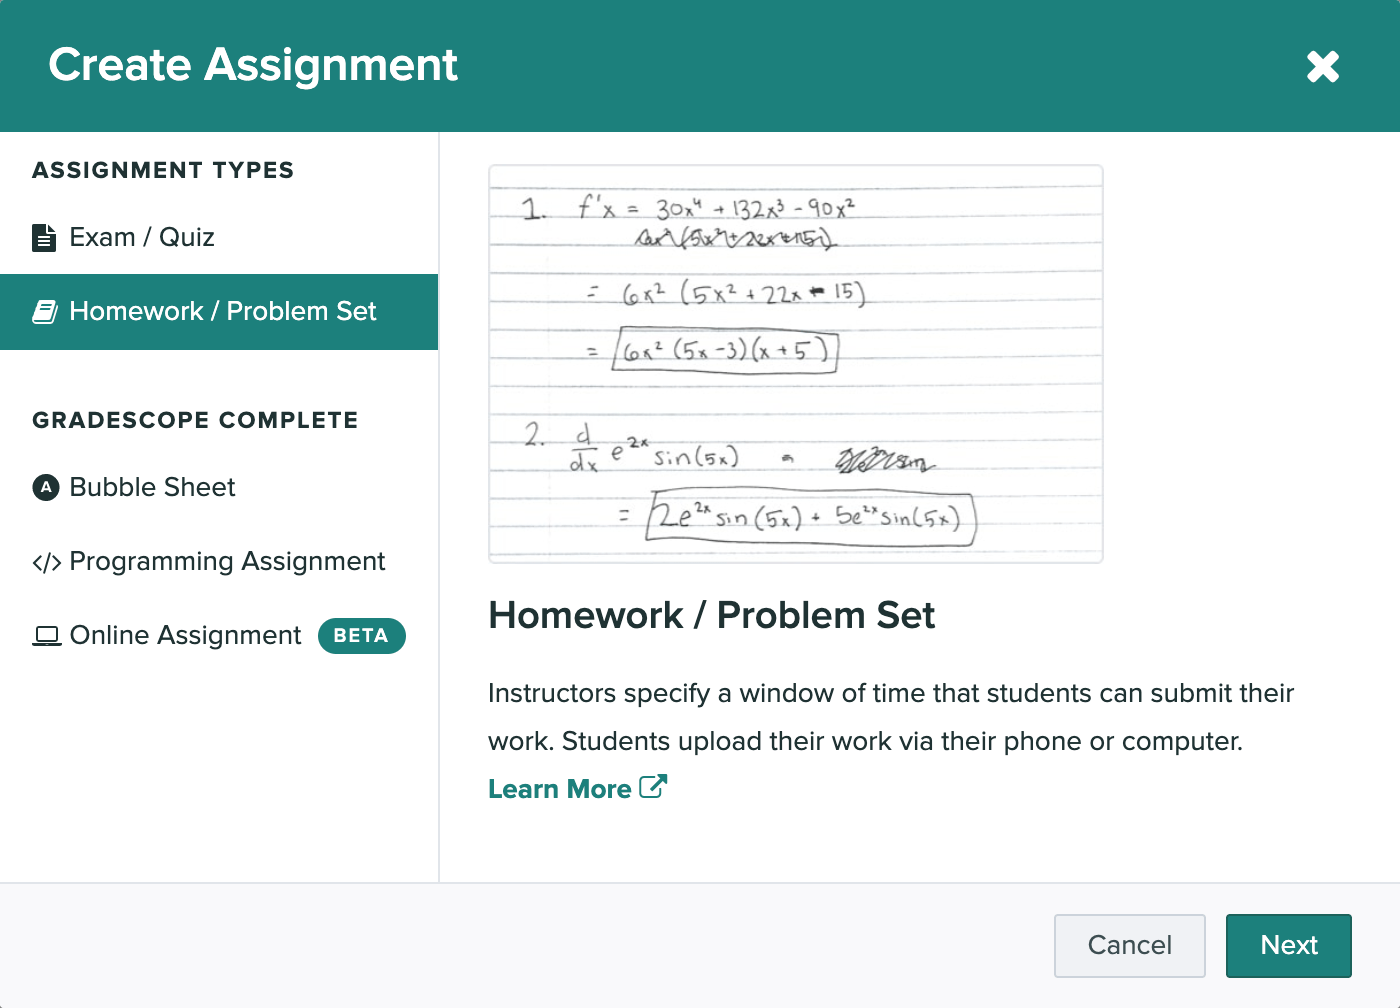 The create assignment modal is open and the homework / problem set option is selected.